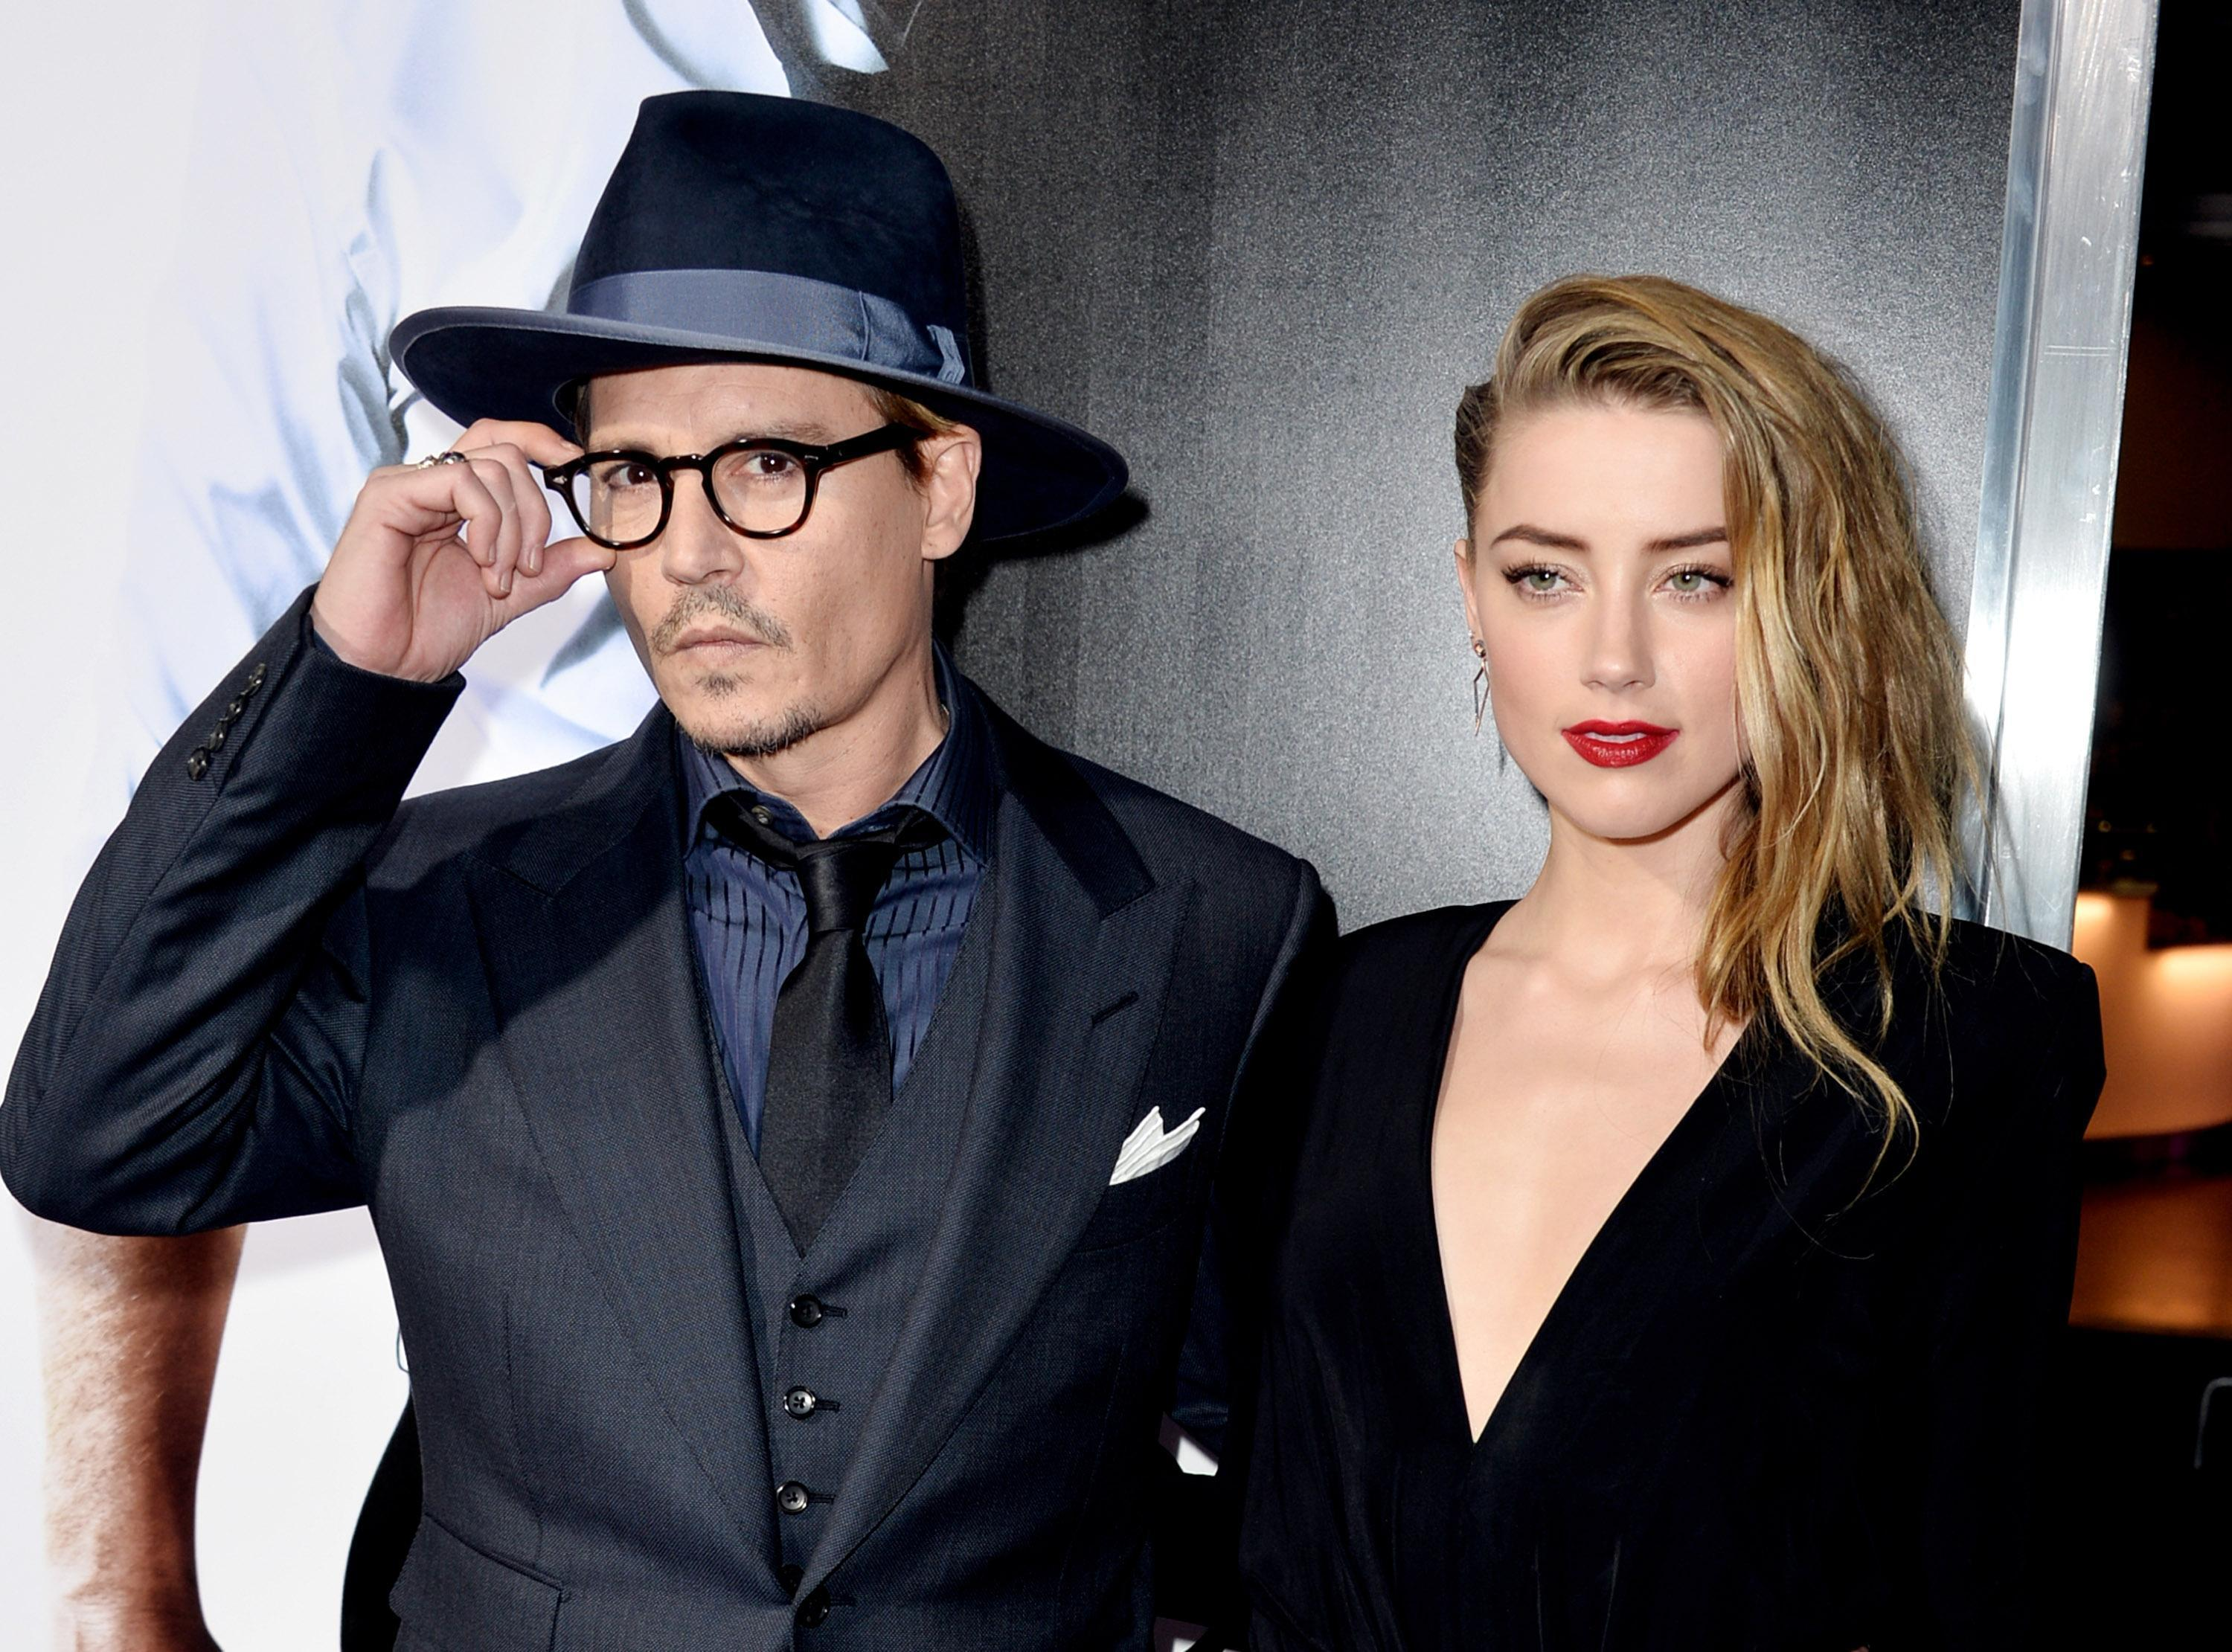 Amber Heard's Monthly Expenses Revealed in Court Docs Amid Johnny Depp Divorce Dispute